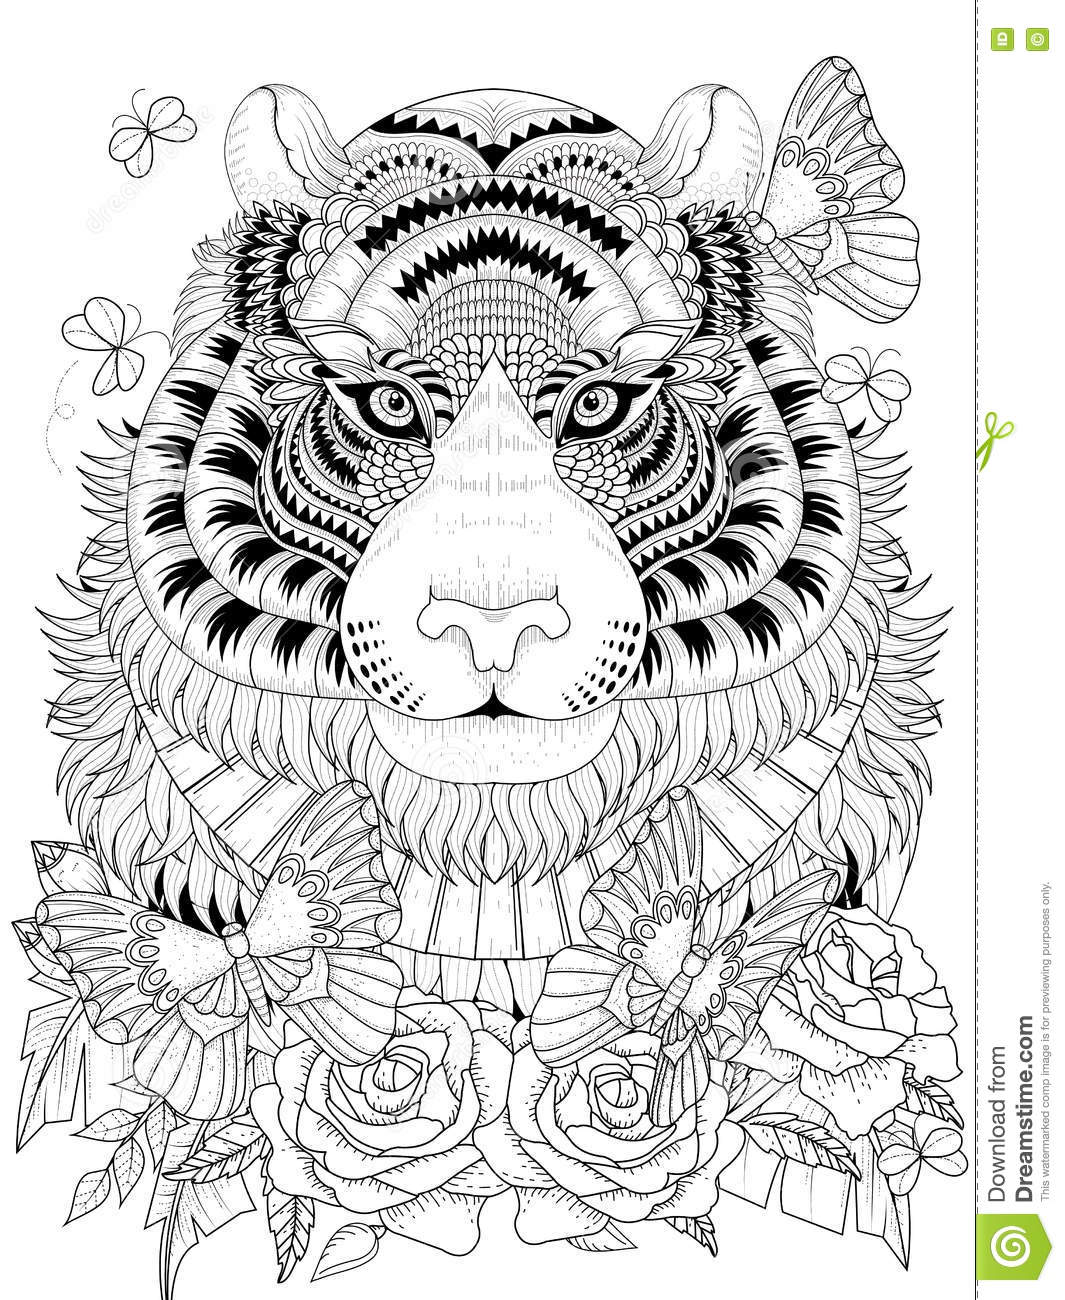 Imposing Tiger Adult Coloring Page Stock Vector